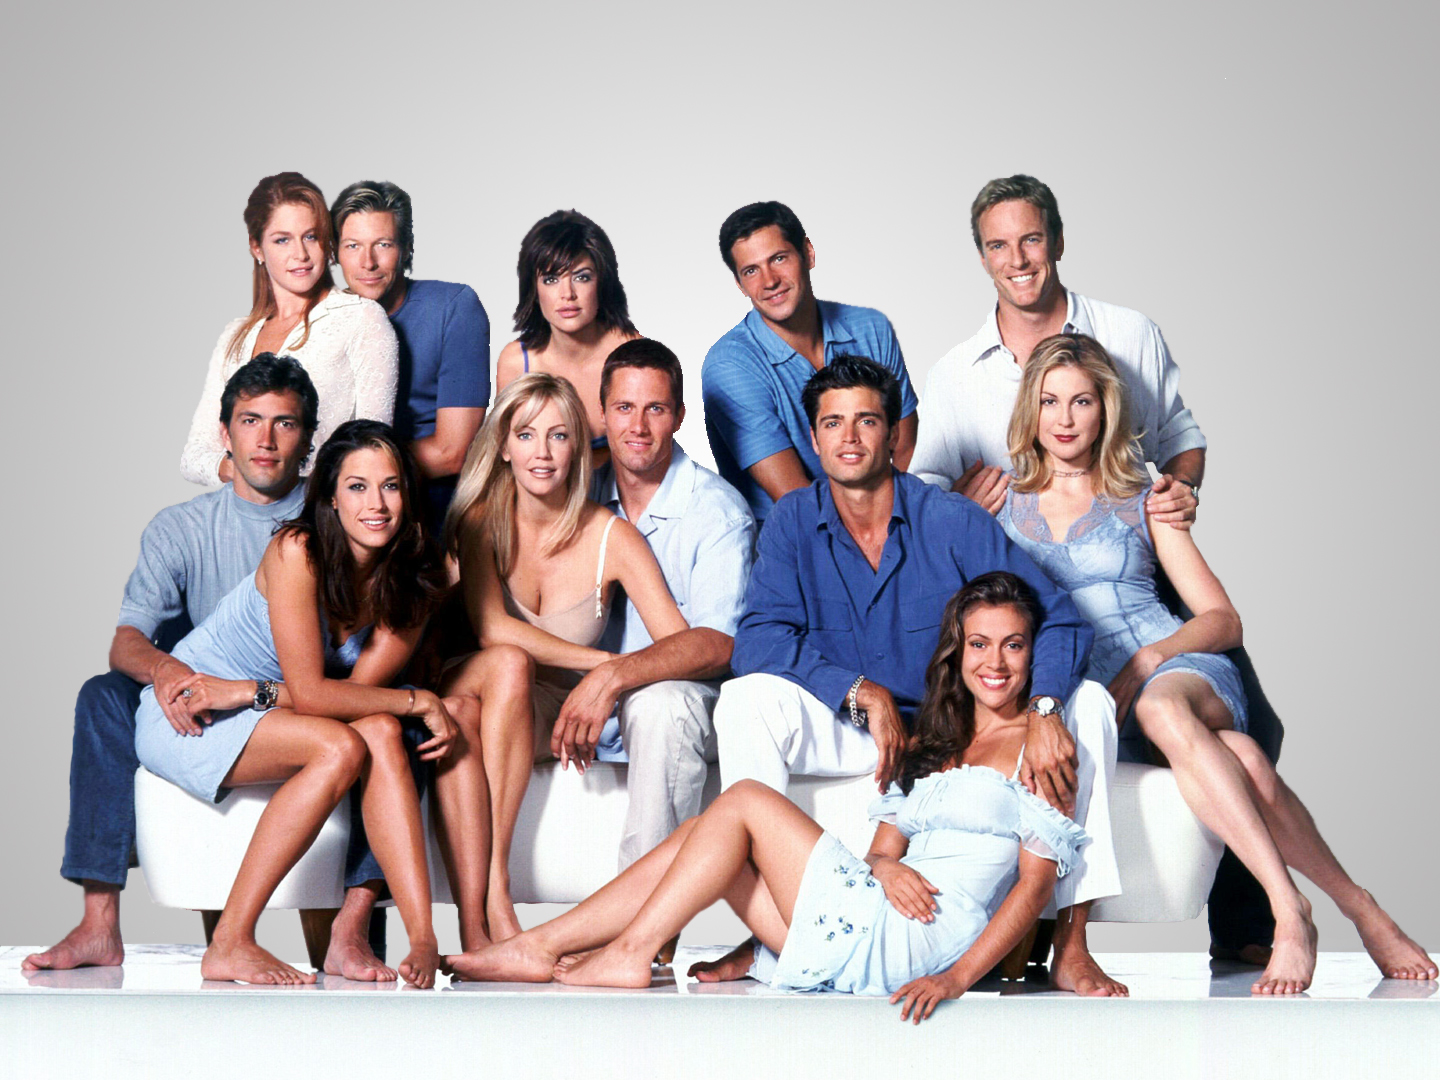 cast-of-melrose-place-5.jpg